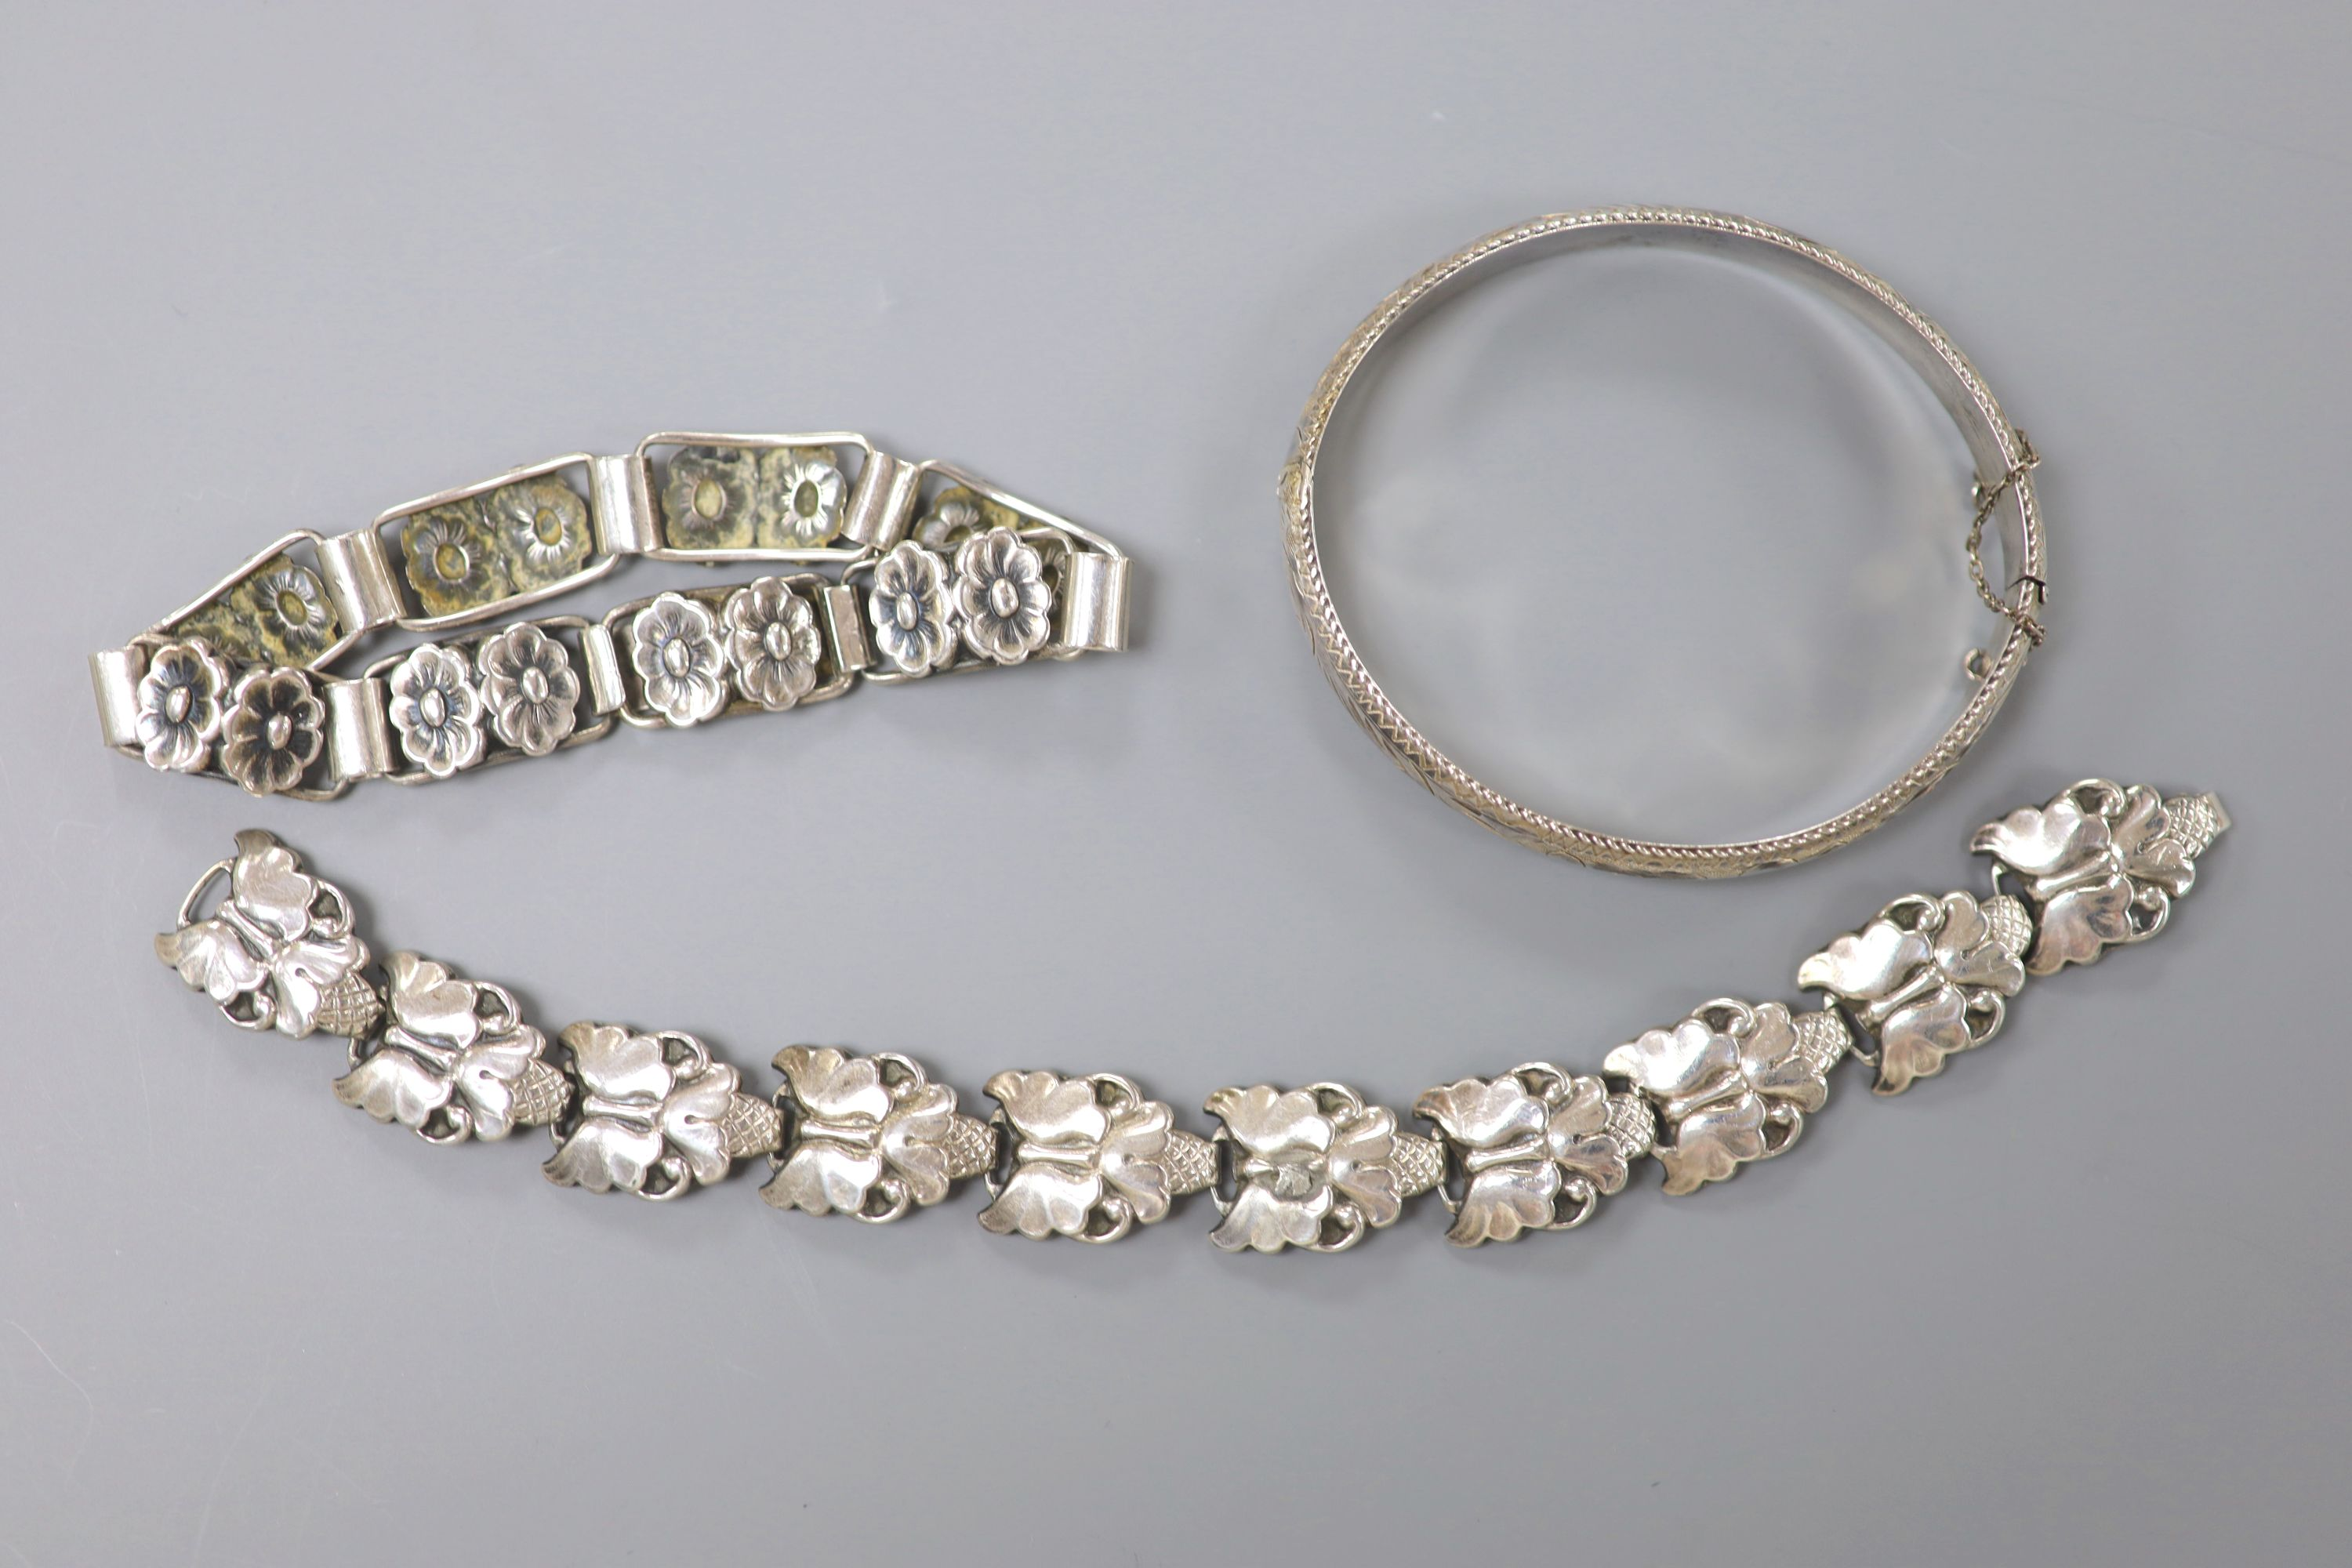 A 20th century Scandinavian 830S white metal stylised flower head bracelet, maker BH, 19cm, one - Image 2 of 3